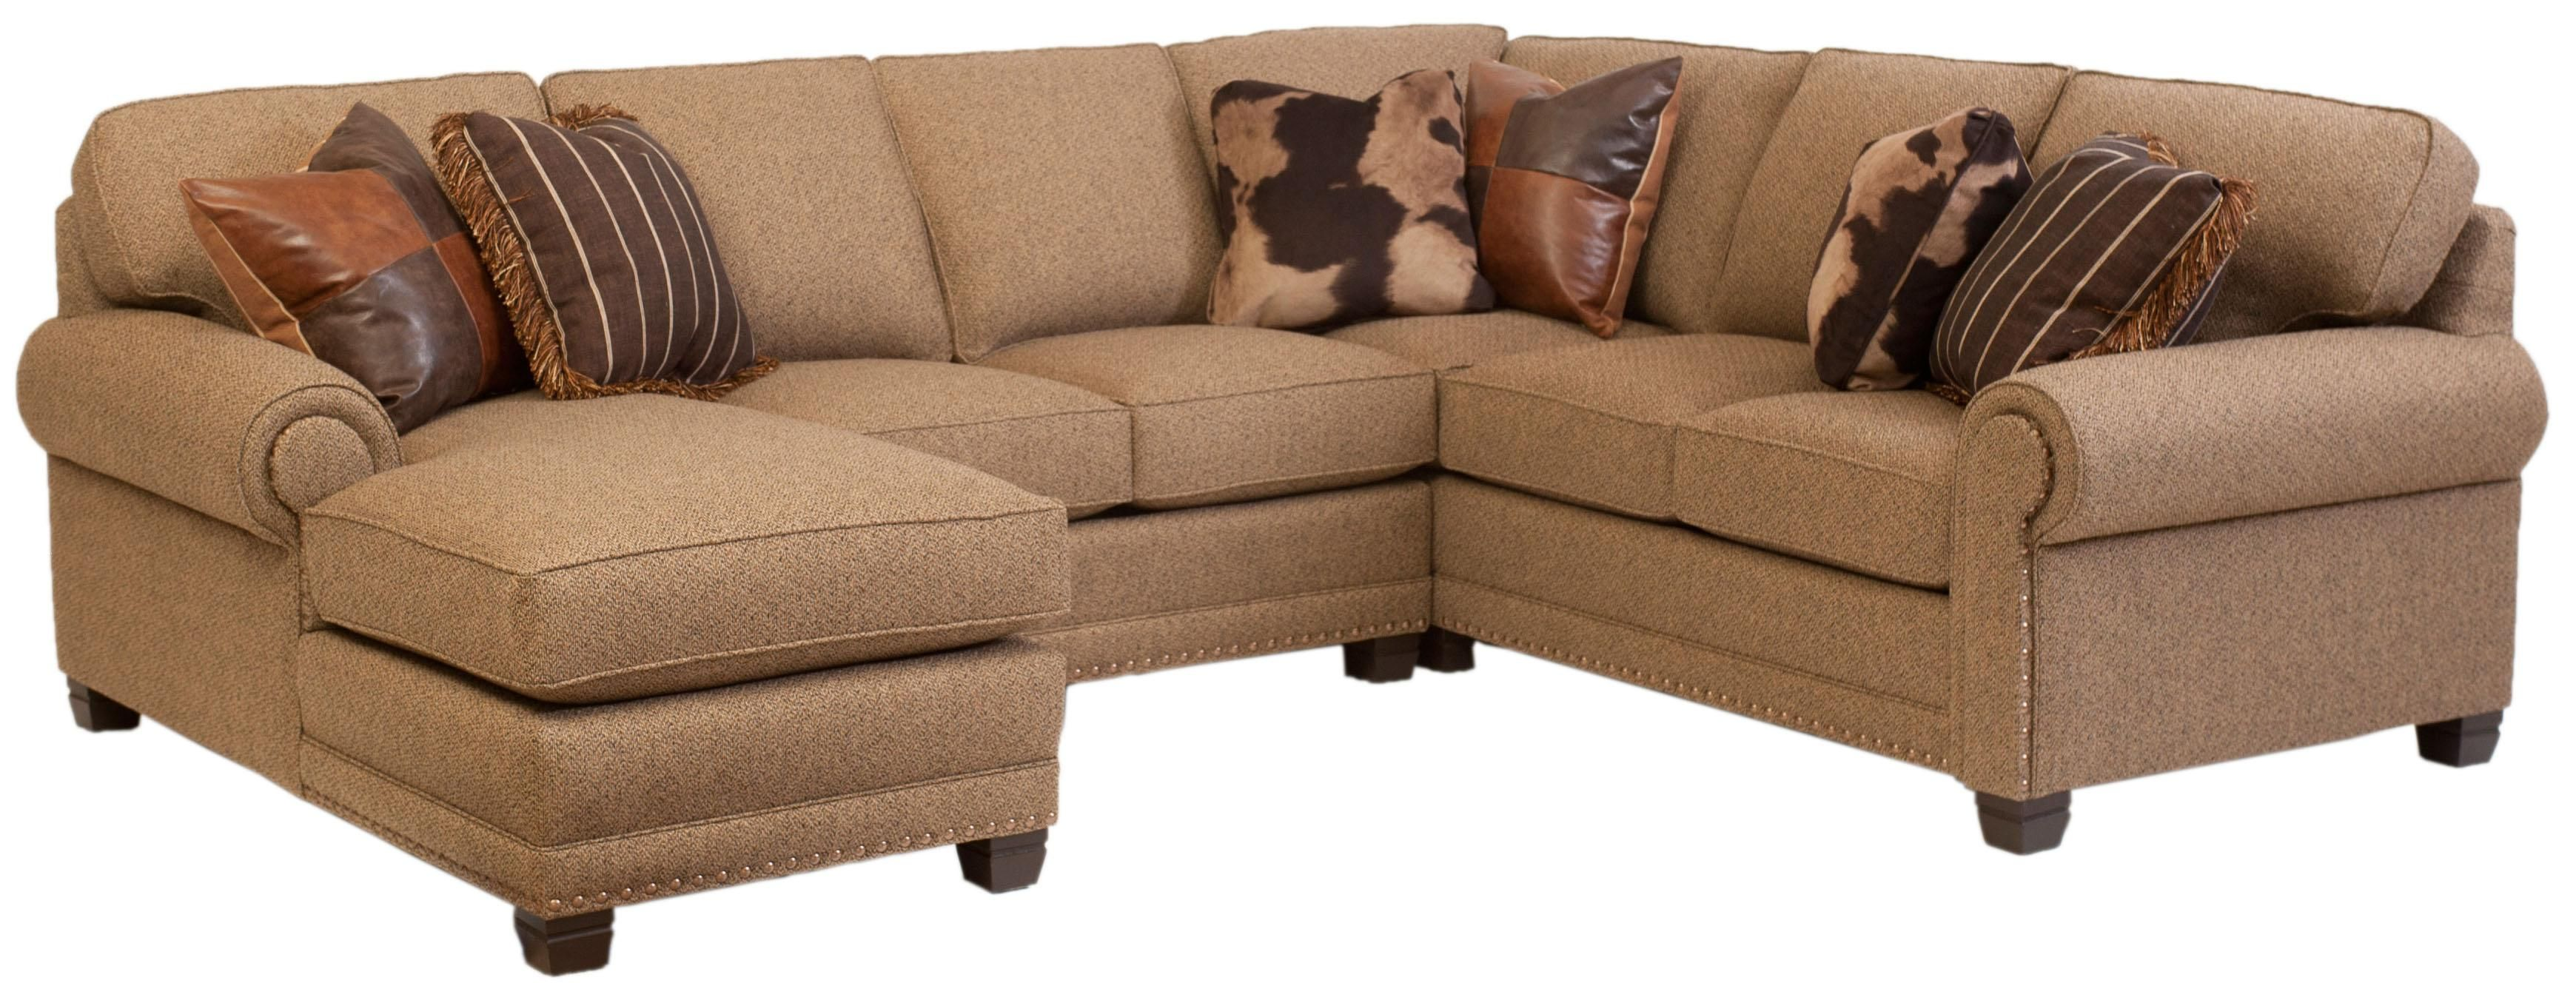 Traditional 3 Piece Sectional Sofa With Left Arm Facing Chaise